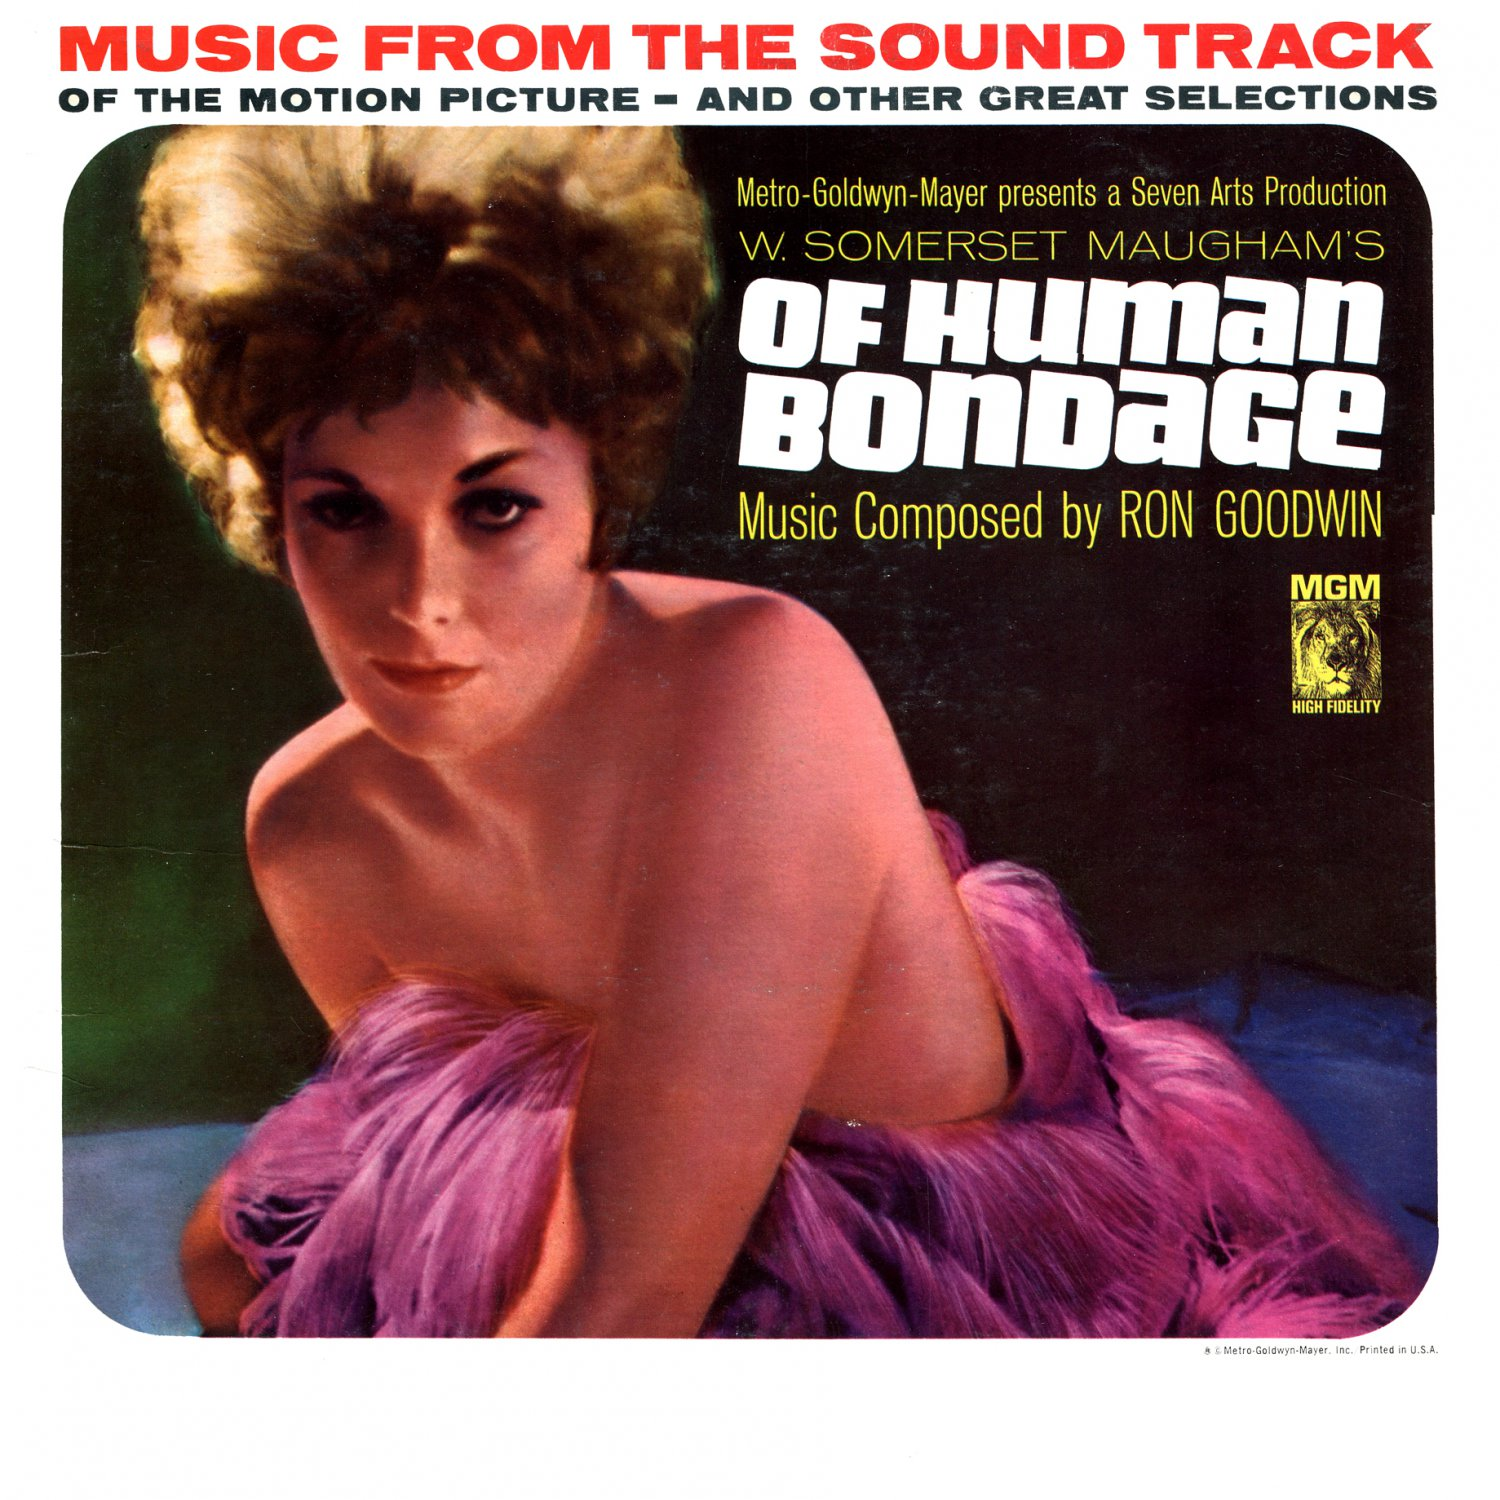 Of Human Bondage - Original Soundtrack, Ron Goodwin OST LP/CD